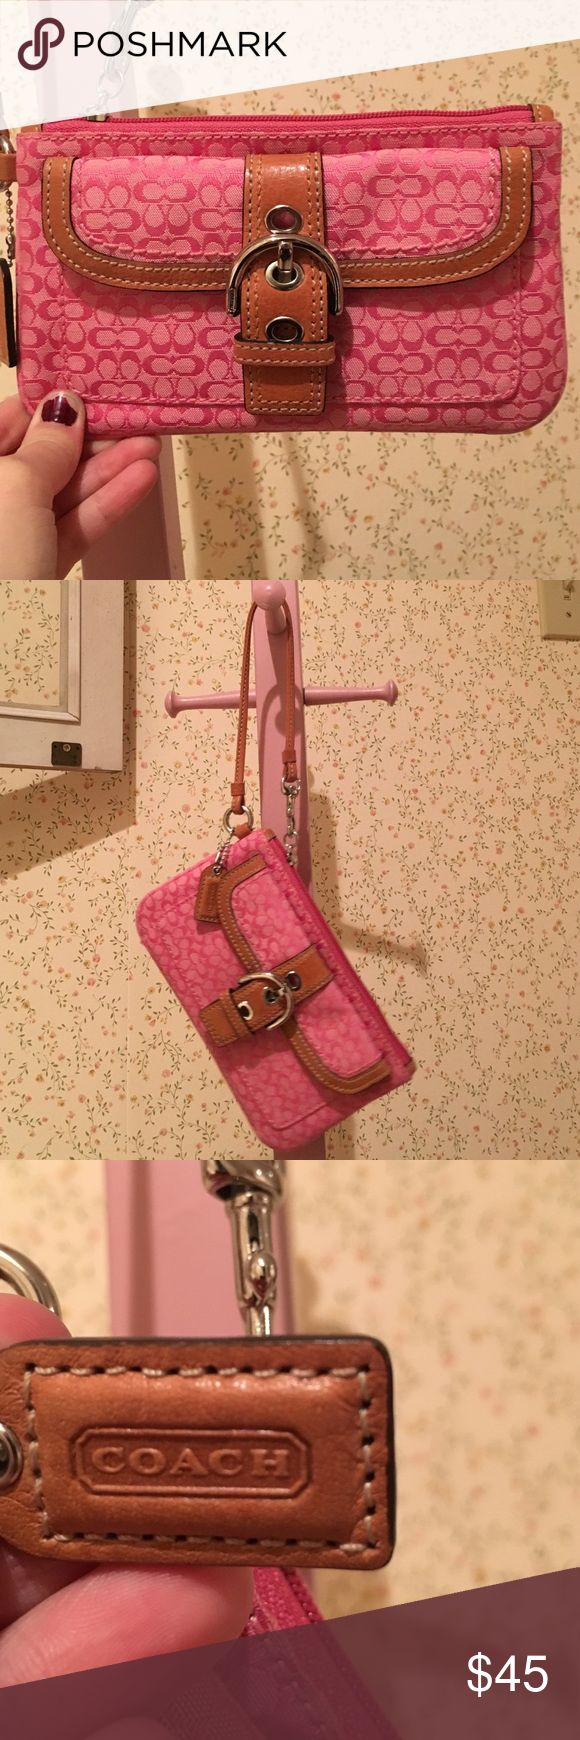 Coach pink wristlet bag Pink Coach wristlet in classic Coach pattern. Barely used, great condition. Coach Bags Clutches & Wristlets